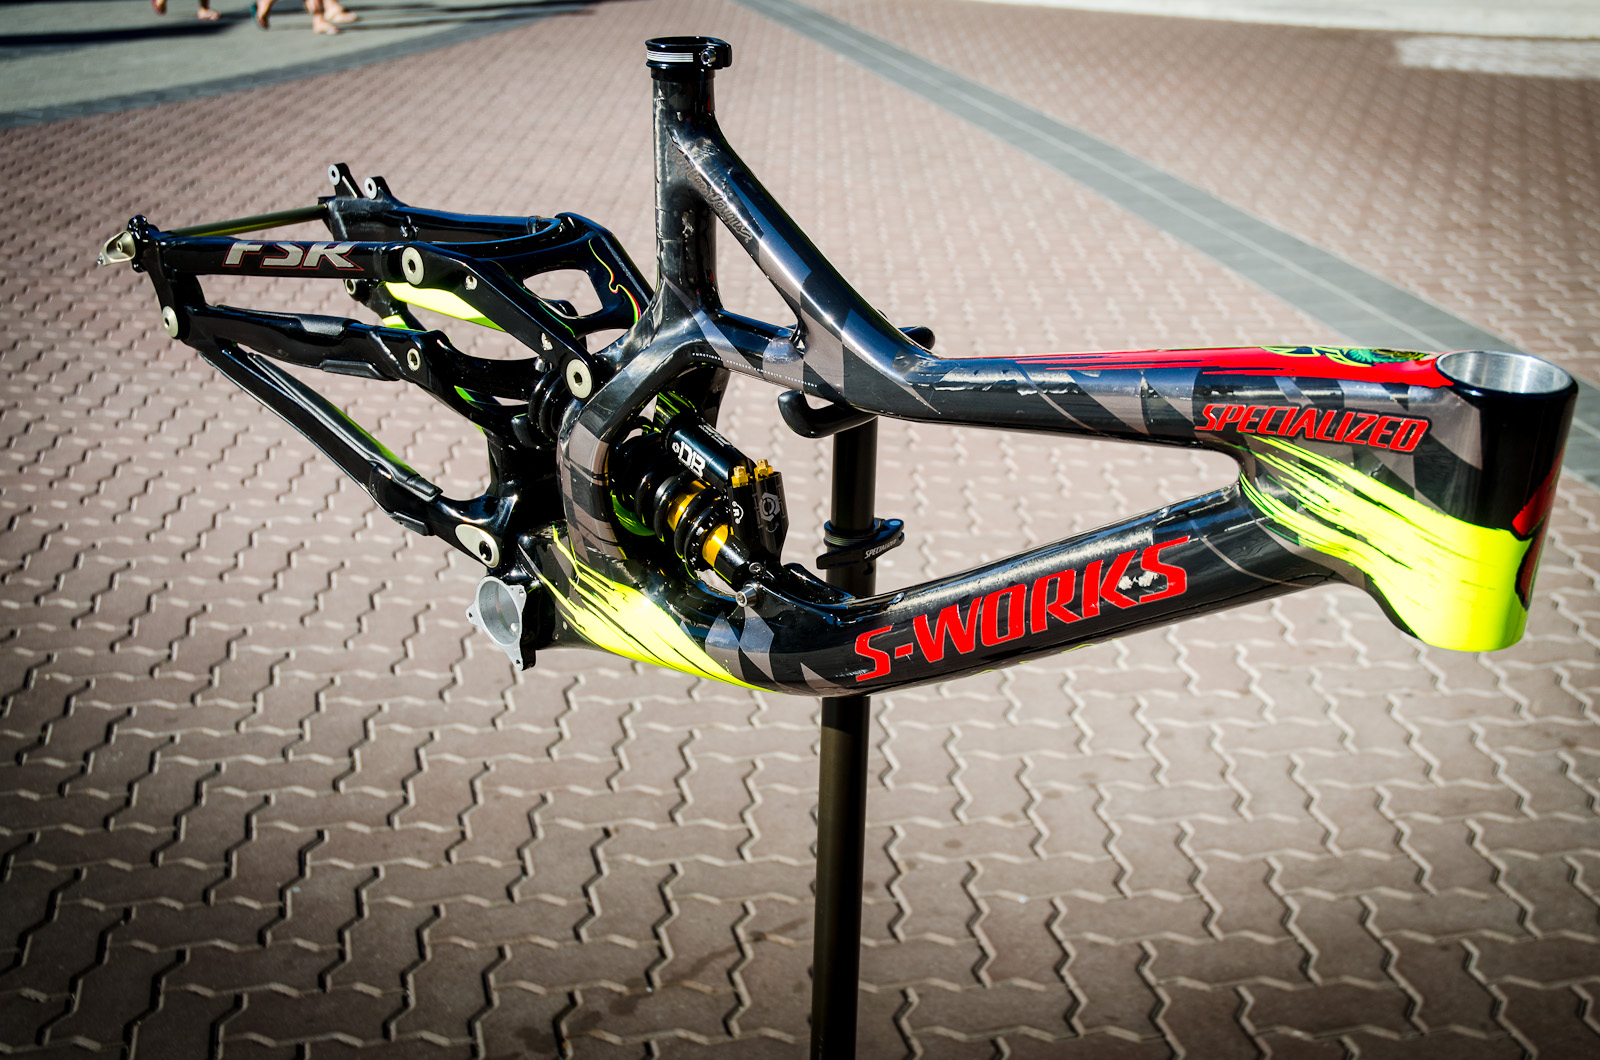 Limited Edition 2013 Specialized Troy Lee Designs S